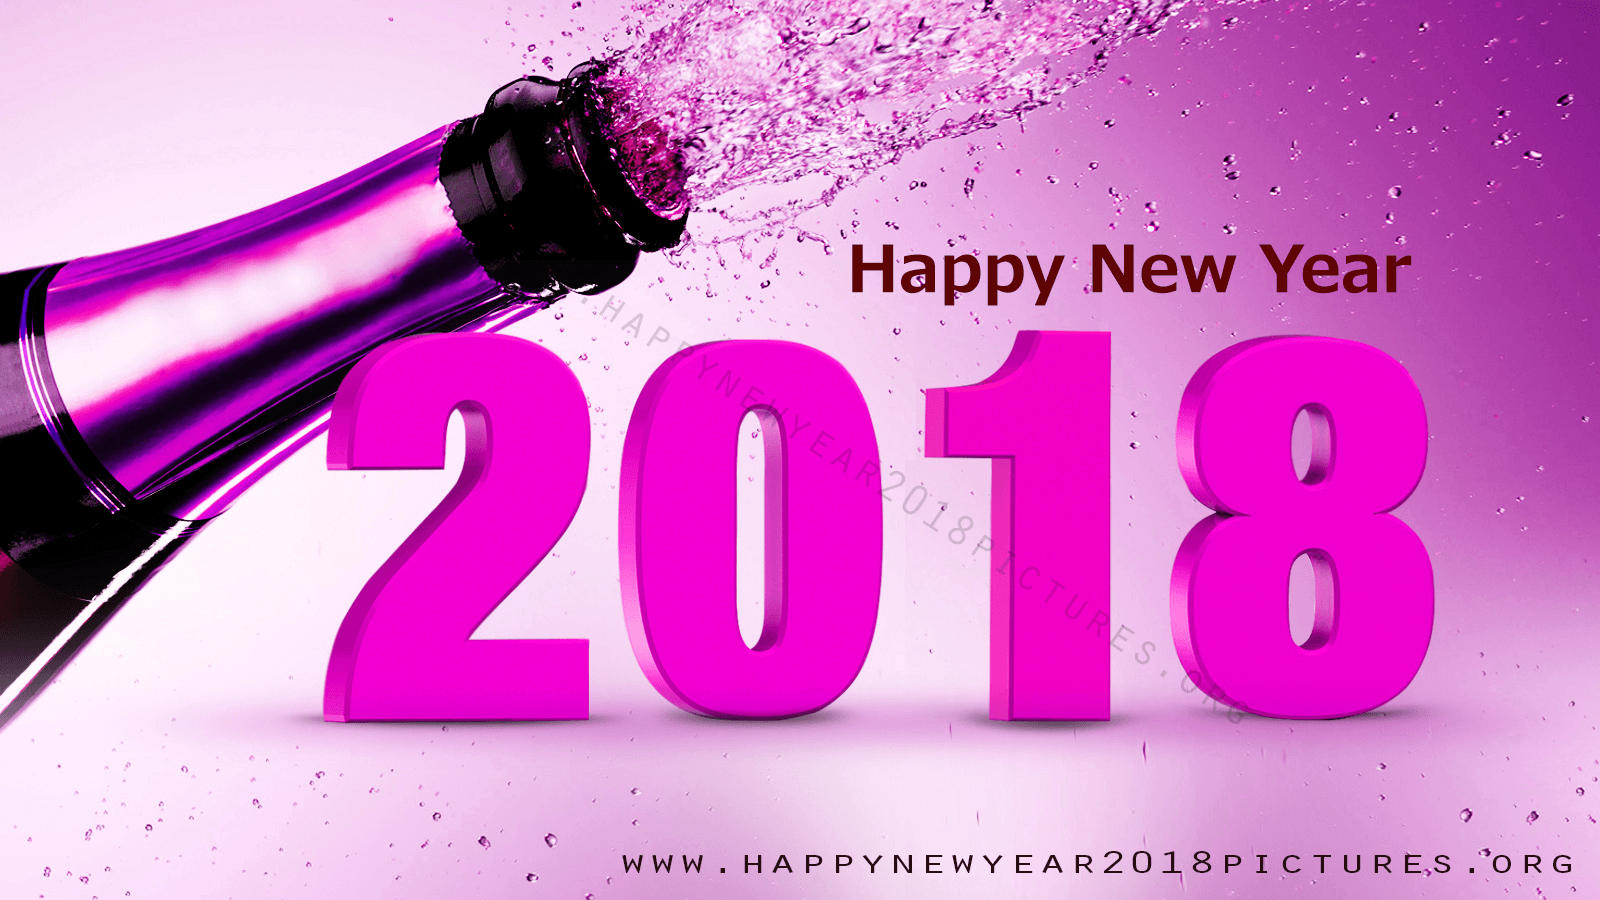 happy new year 2018 hd wallpaper images pictures